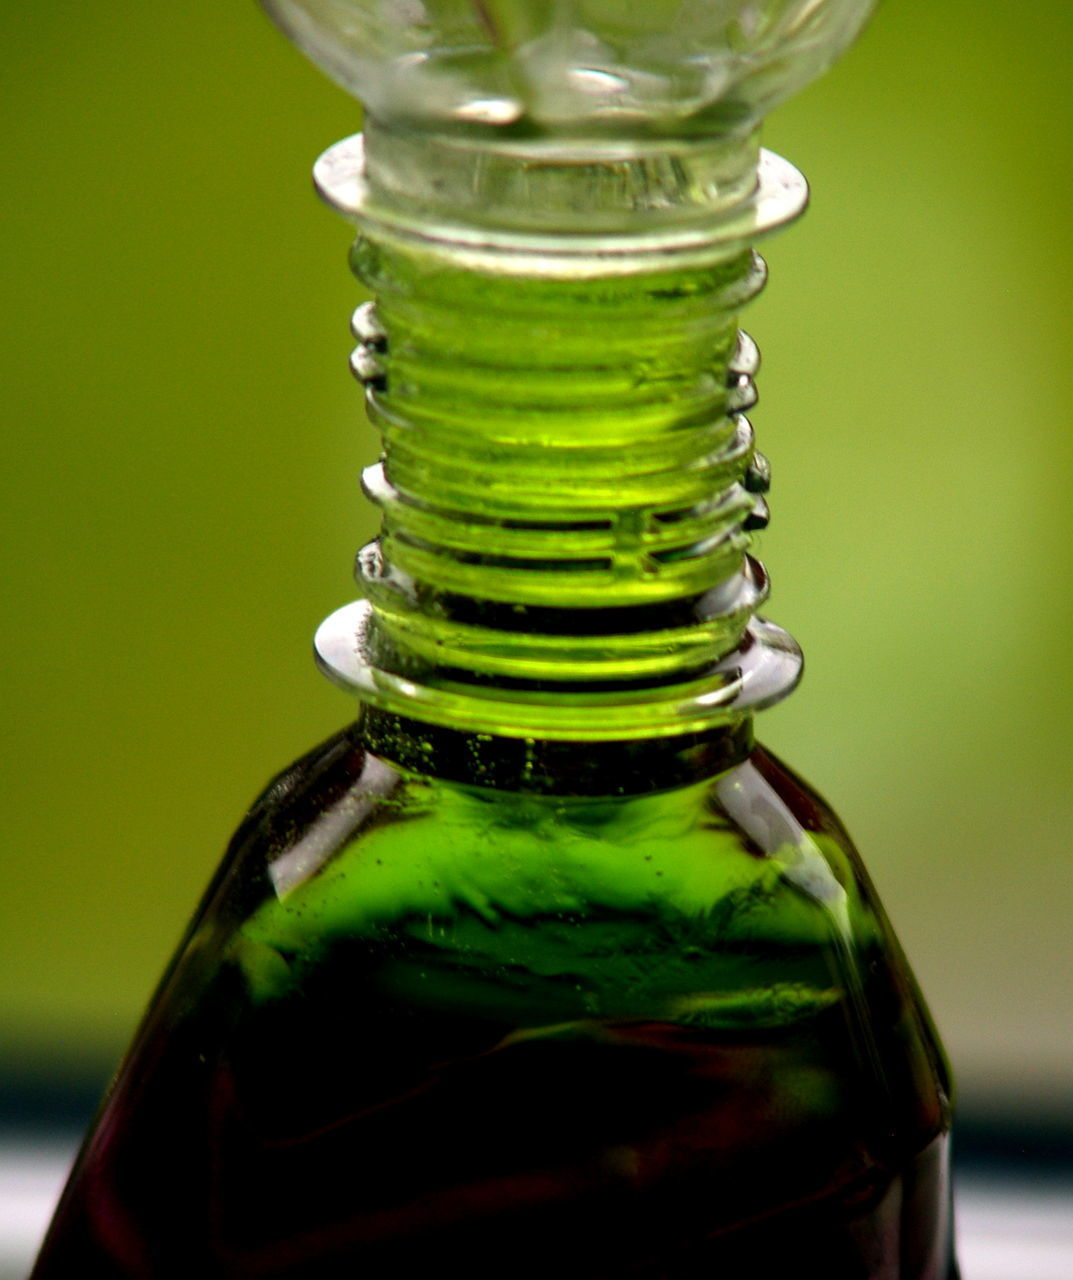 bottle, green color, close-up, focus on foreground, table, no people, indoors, freshness, drink, alcohol, water, nature, day